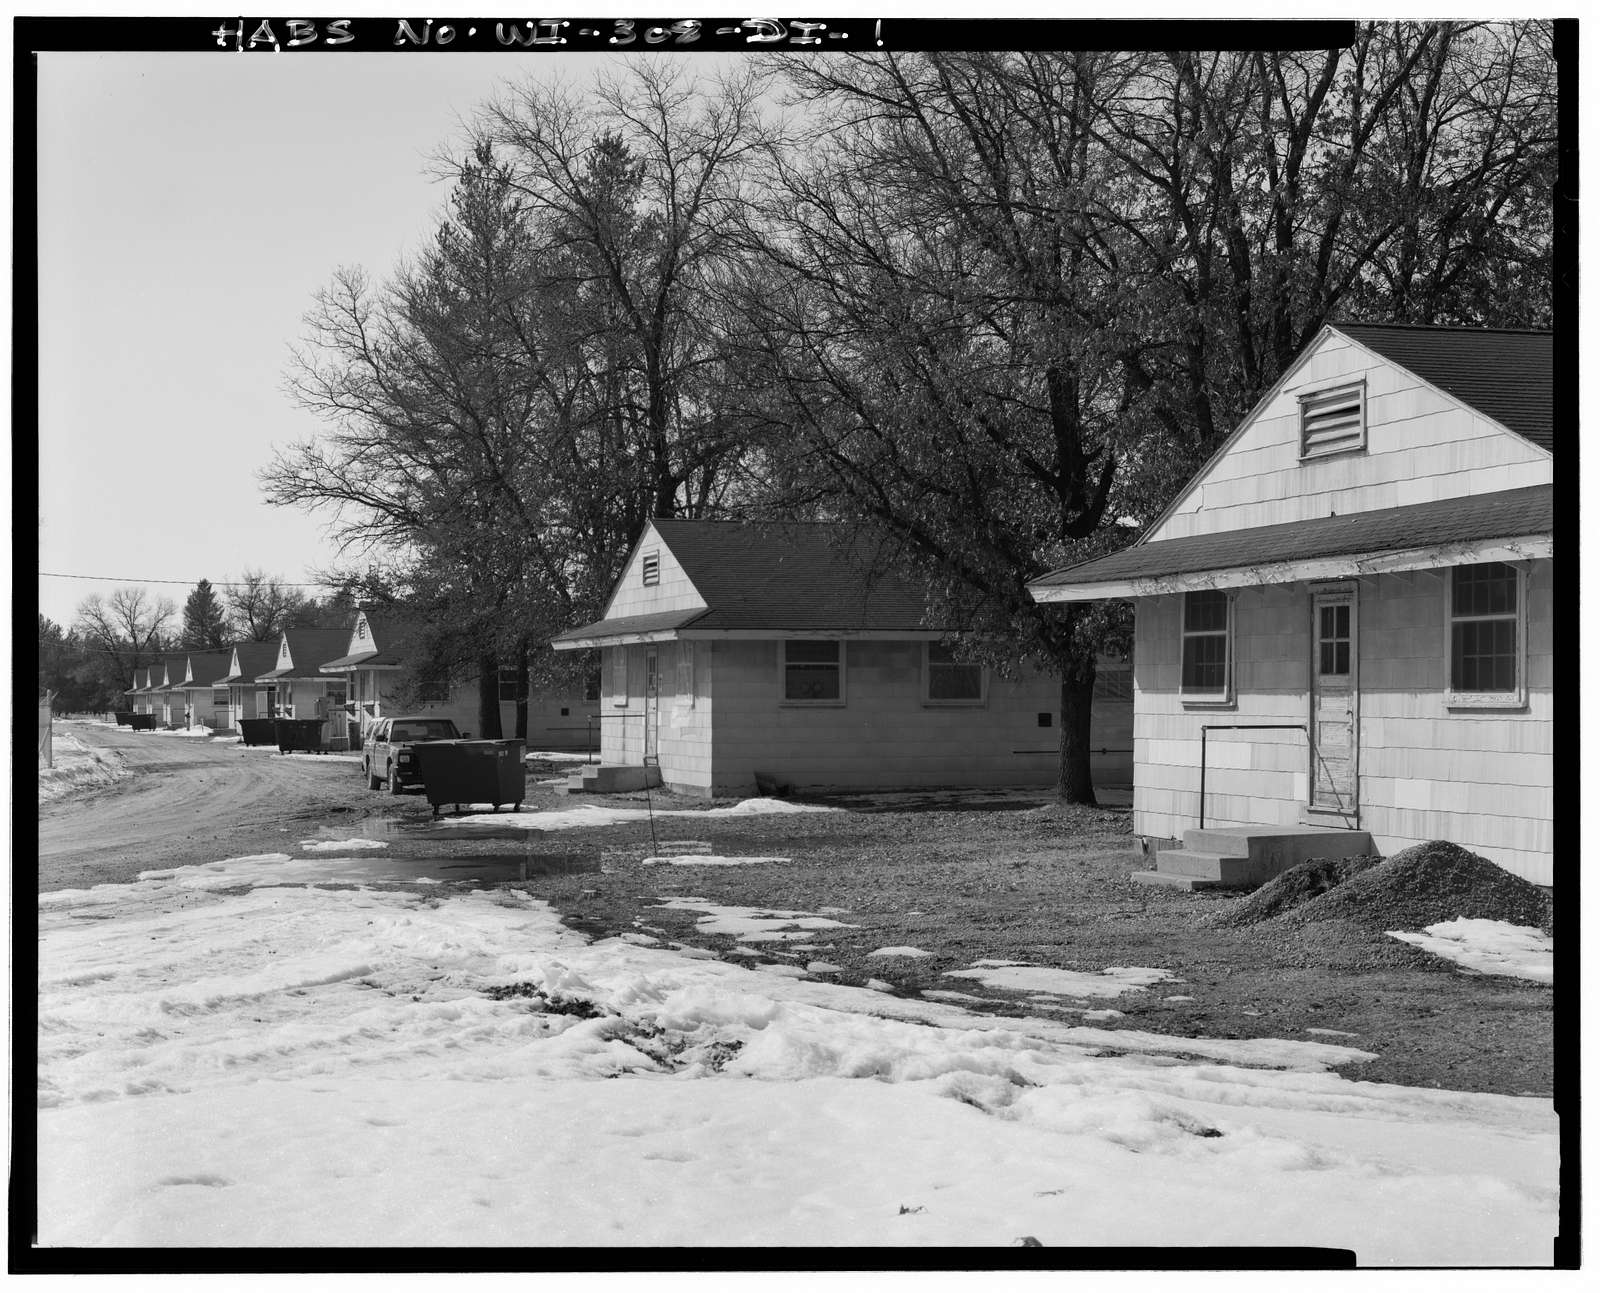 Fort McCoy, Building No. T-1096, South side of South Ninth Avenue, Block 10, Sparta, Monroe County, WI